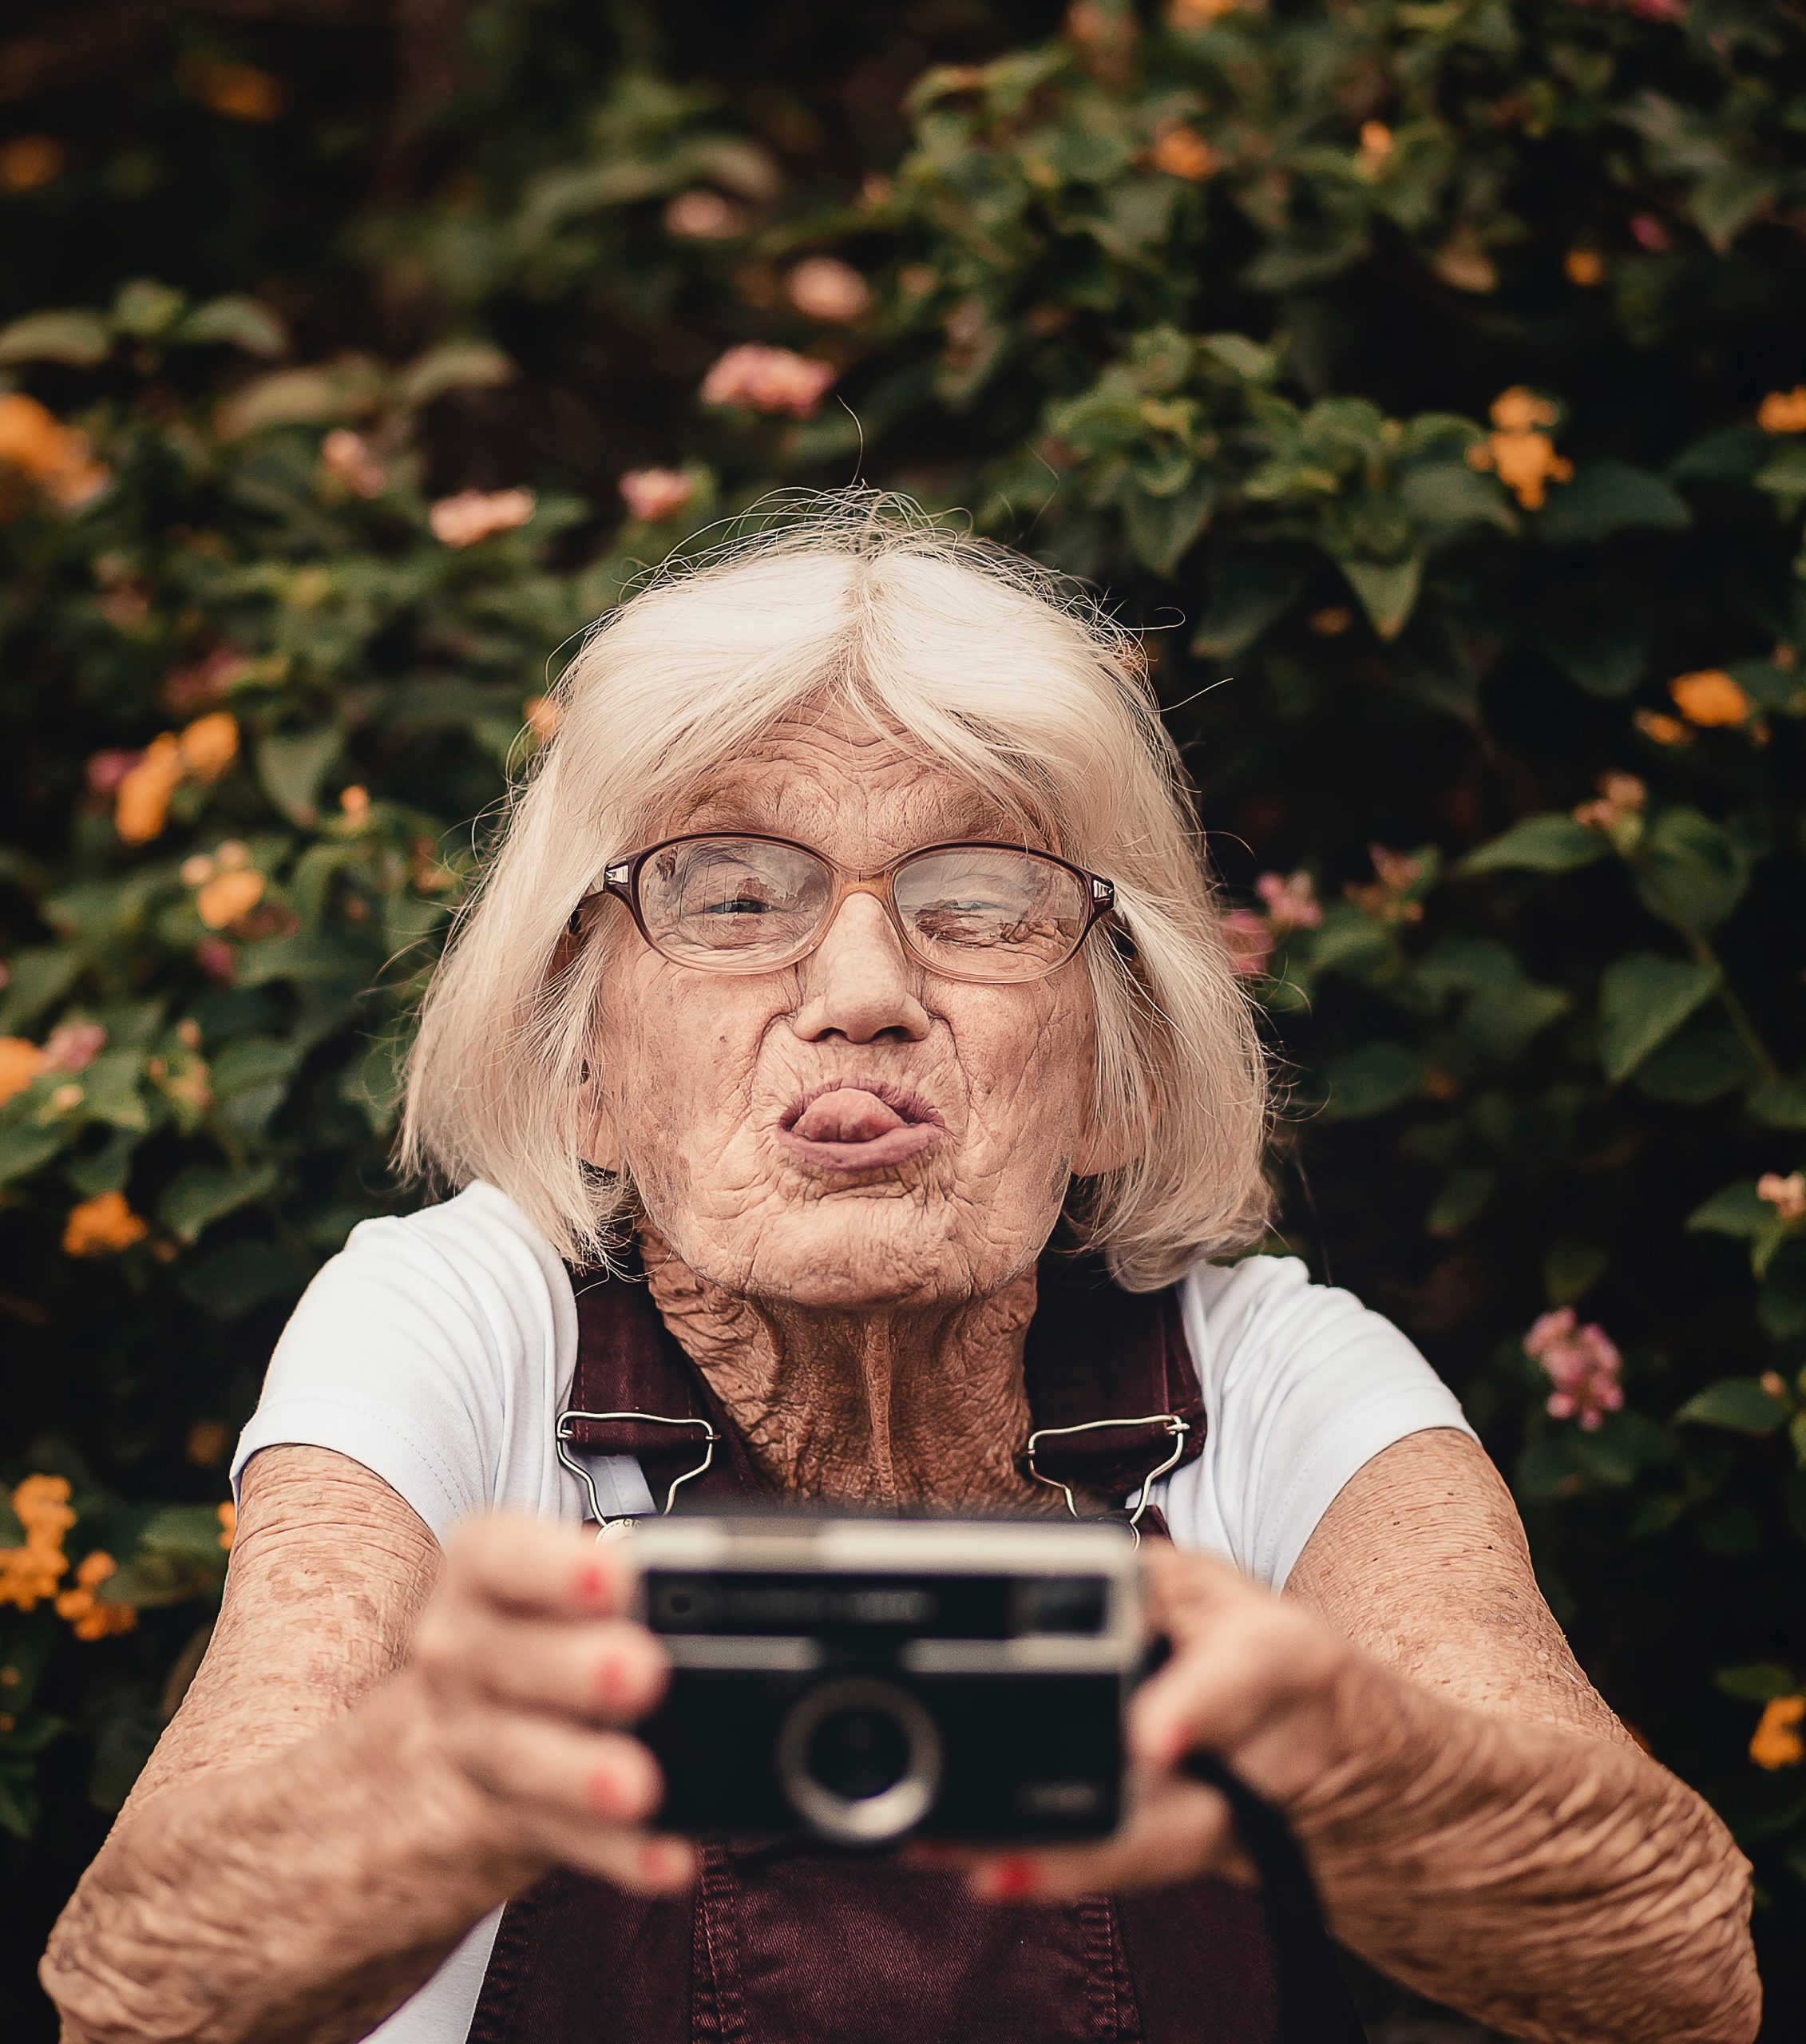 Older woman taking selfie with old camera